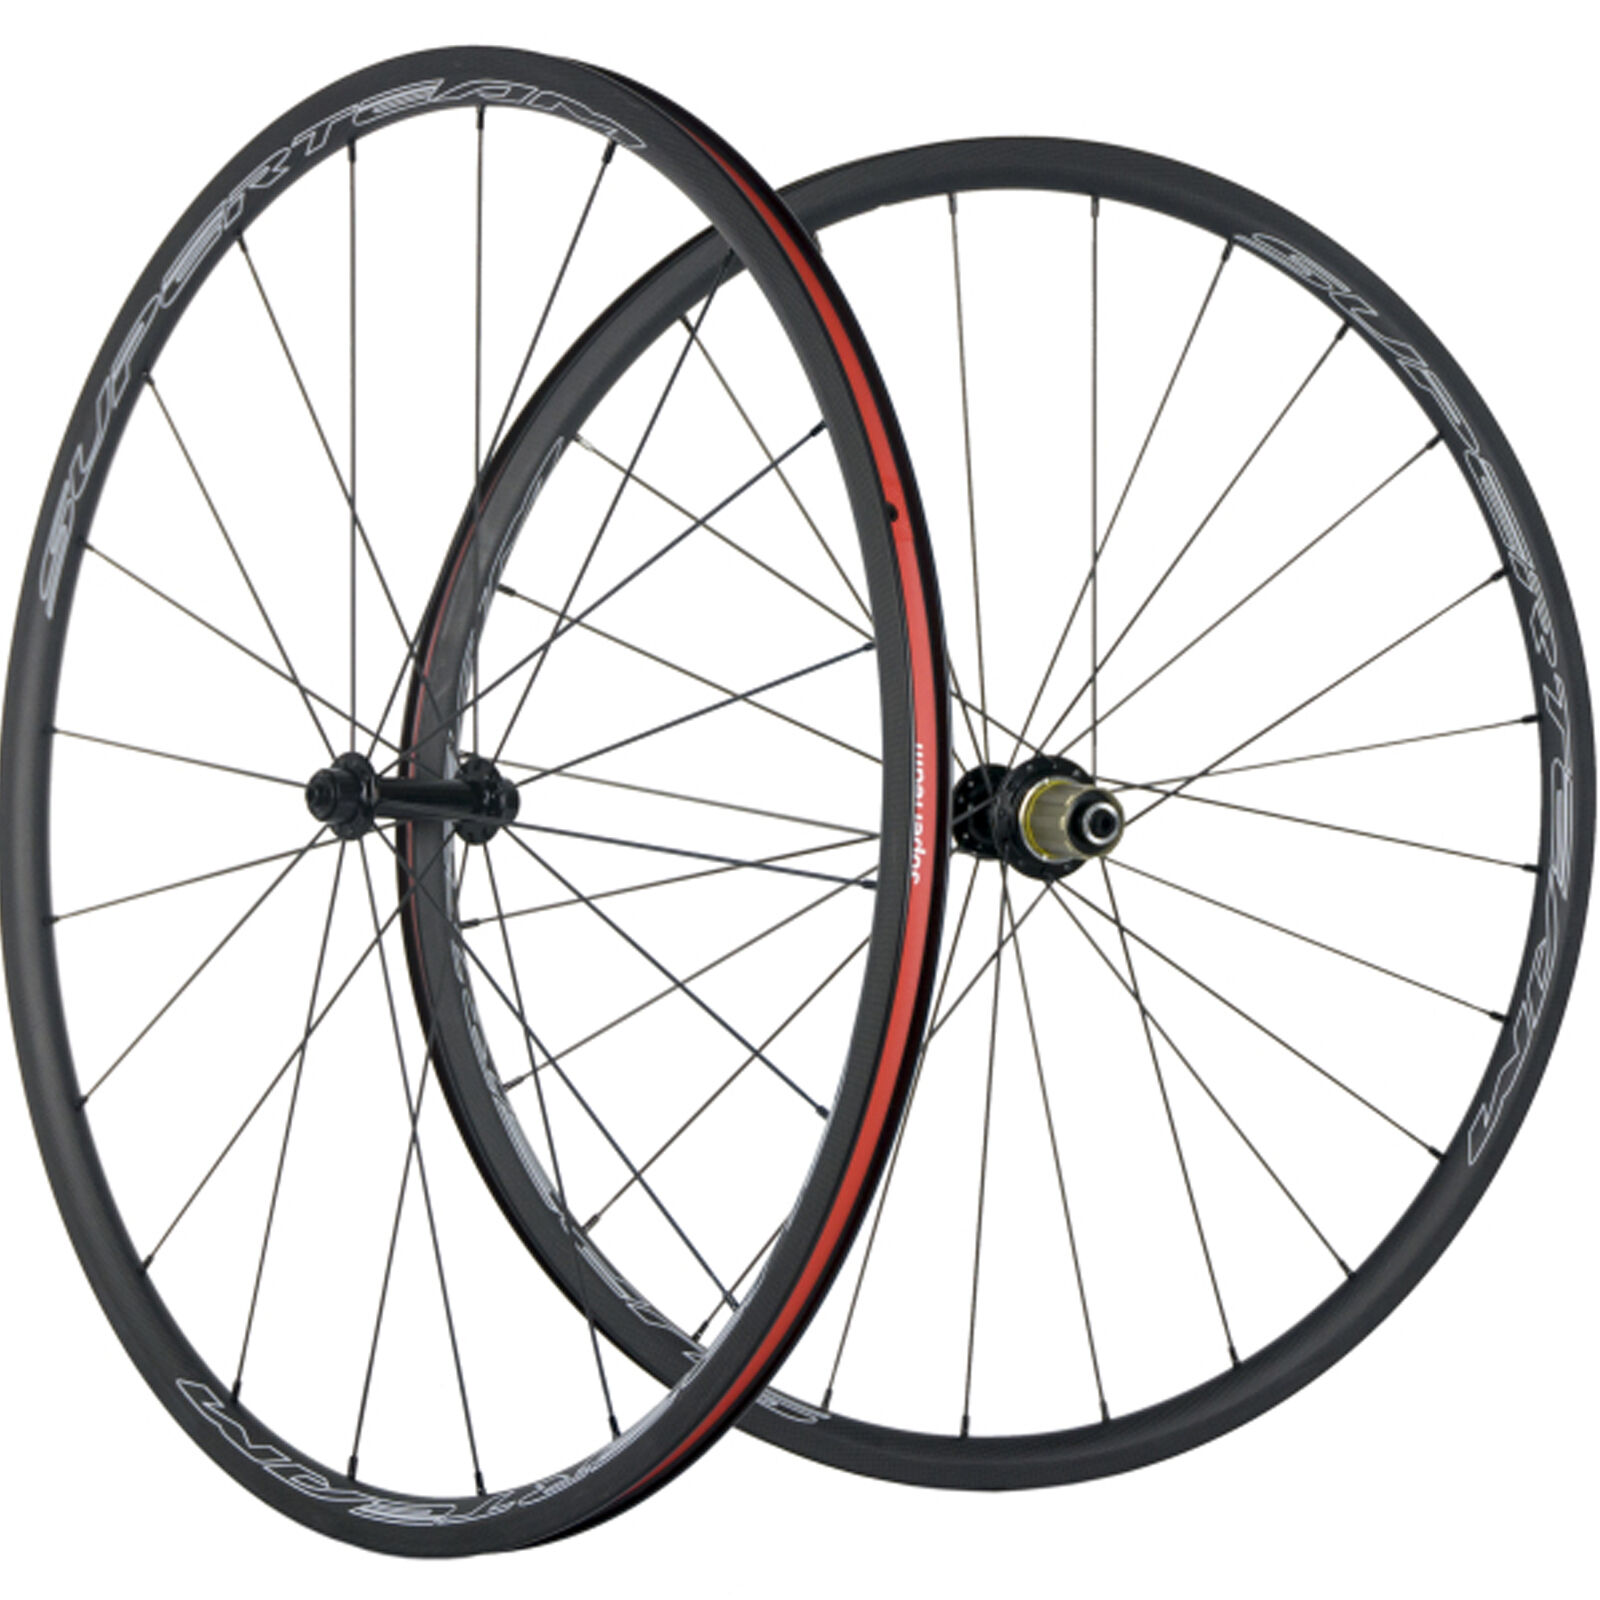 SUPERTEAM 24mm Depth Carbon Road Wheelset Clincher R13 Cycling Carbon Wheels